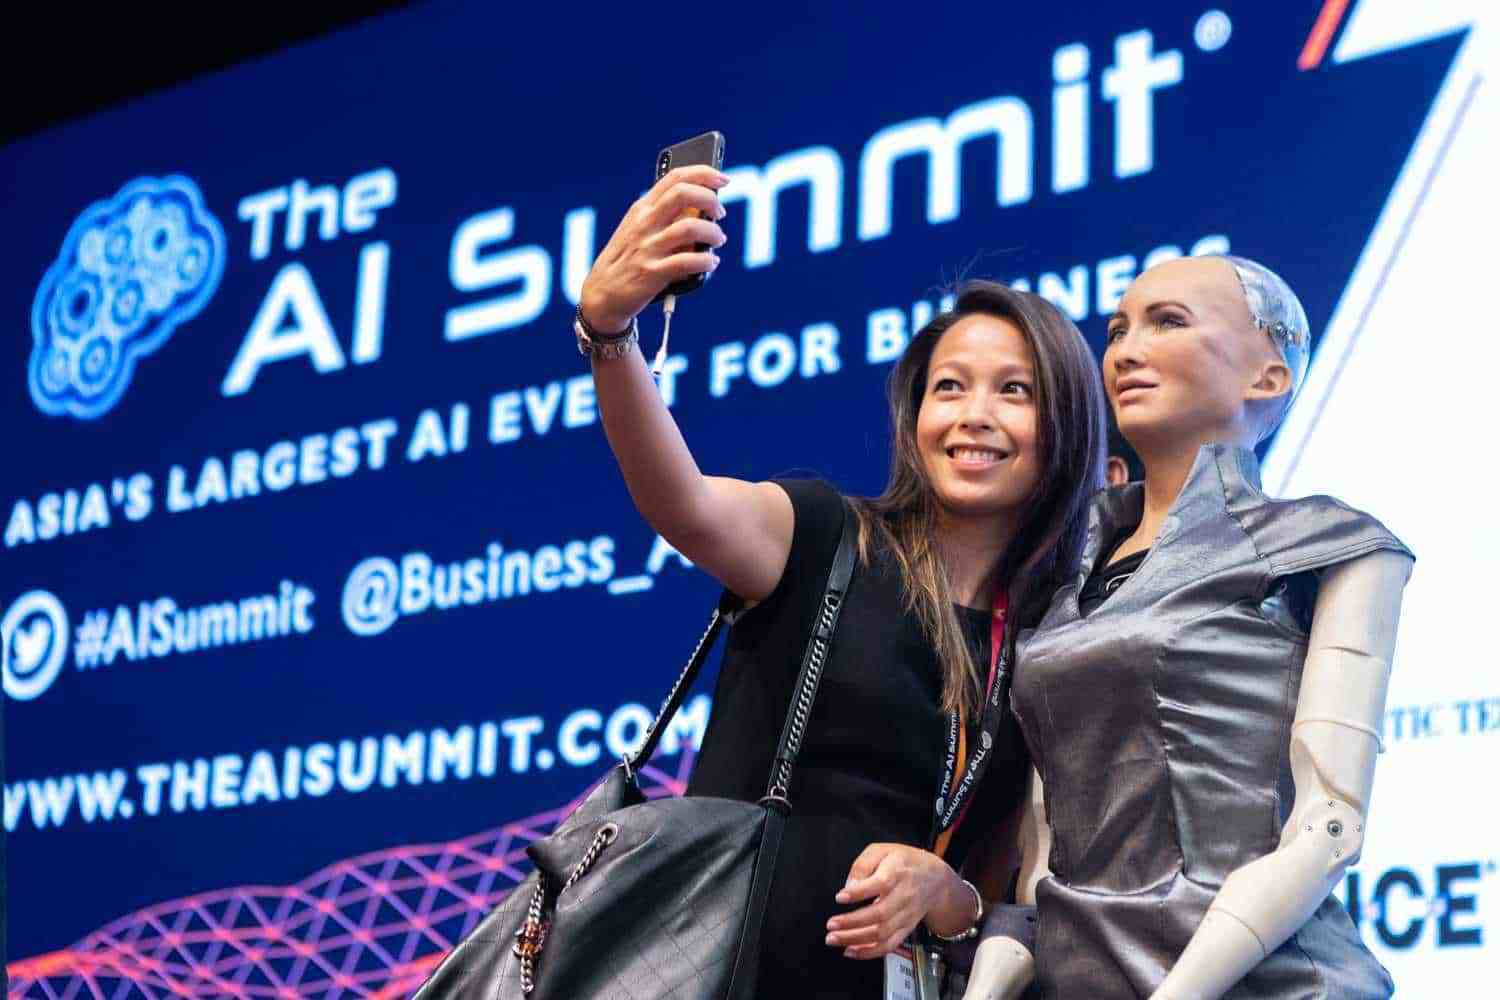 It's Time To Make AI Innovation Truly Inclusive